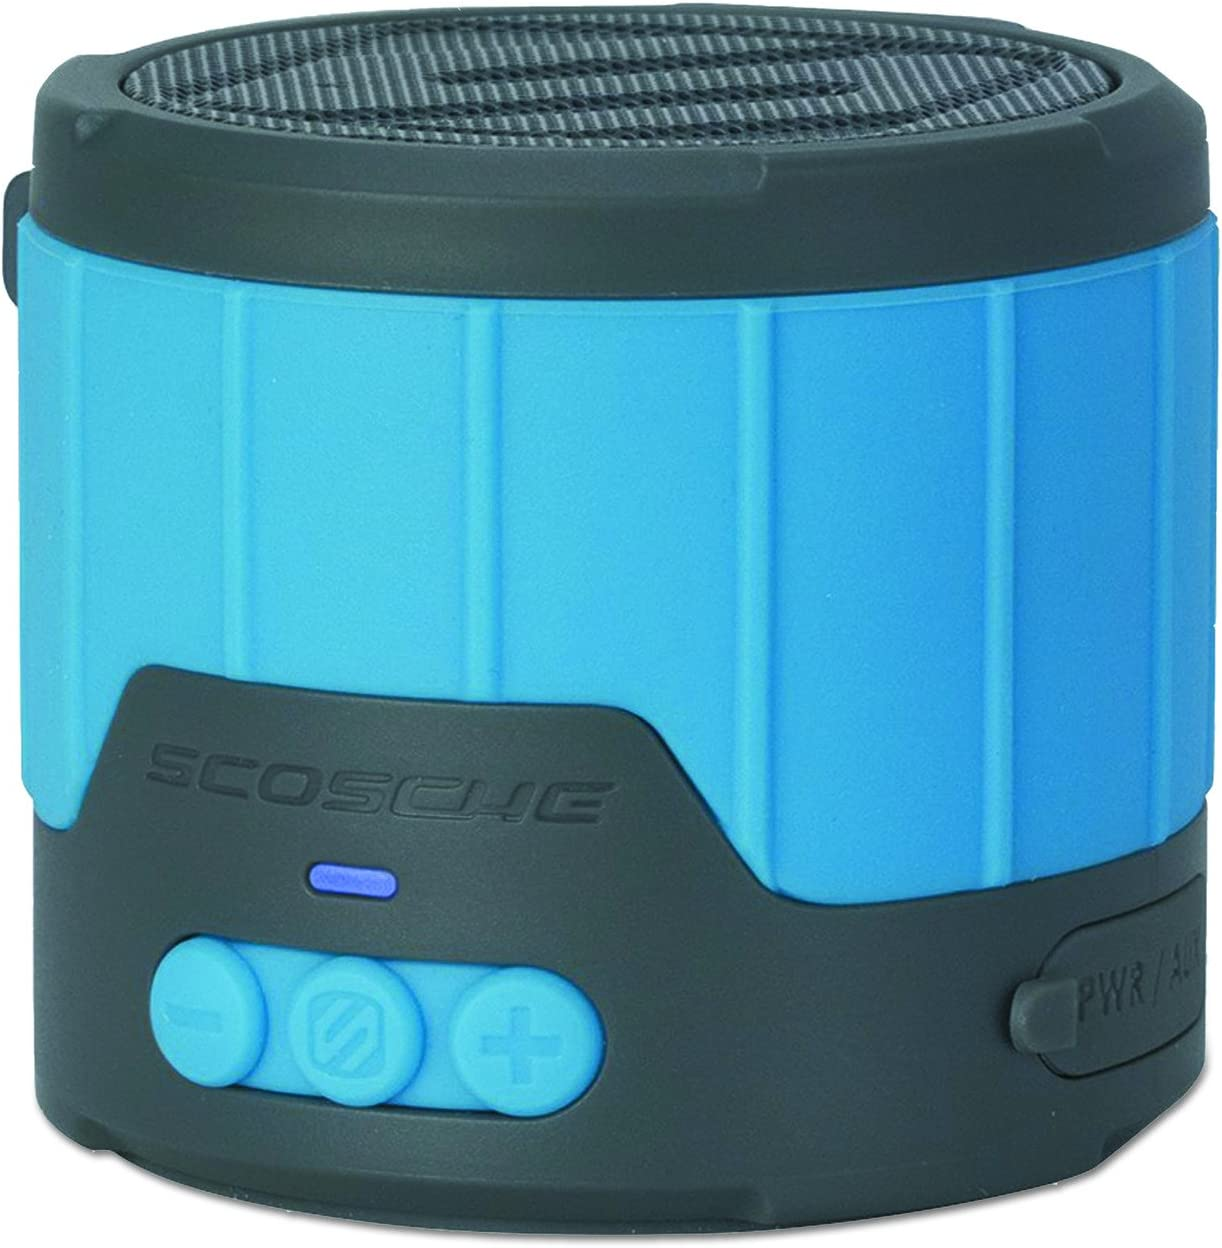 Blue Scosche BTBTLMBL Mini Rugged Weatherproof Wireless Bluetooth Portable Speaker